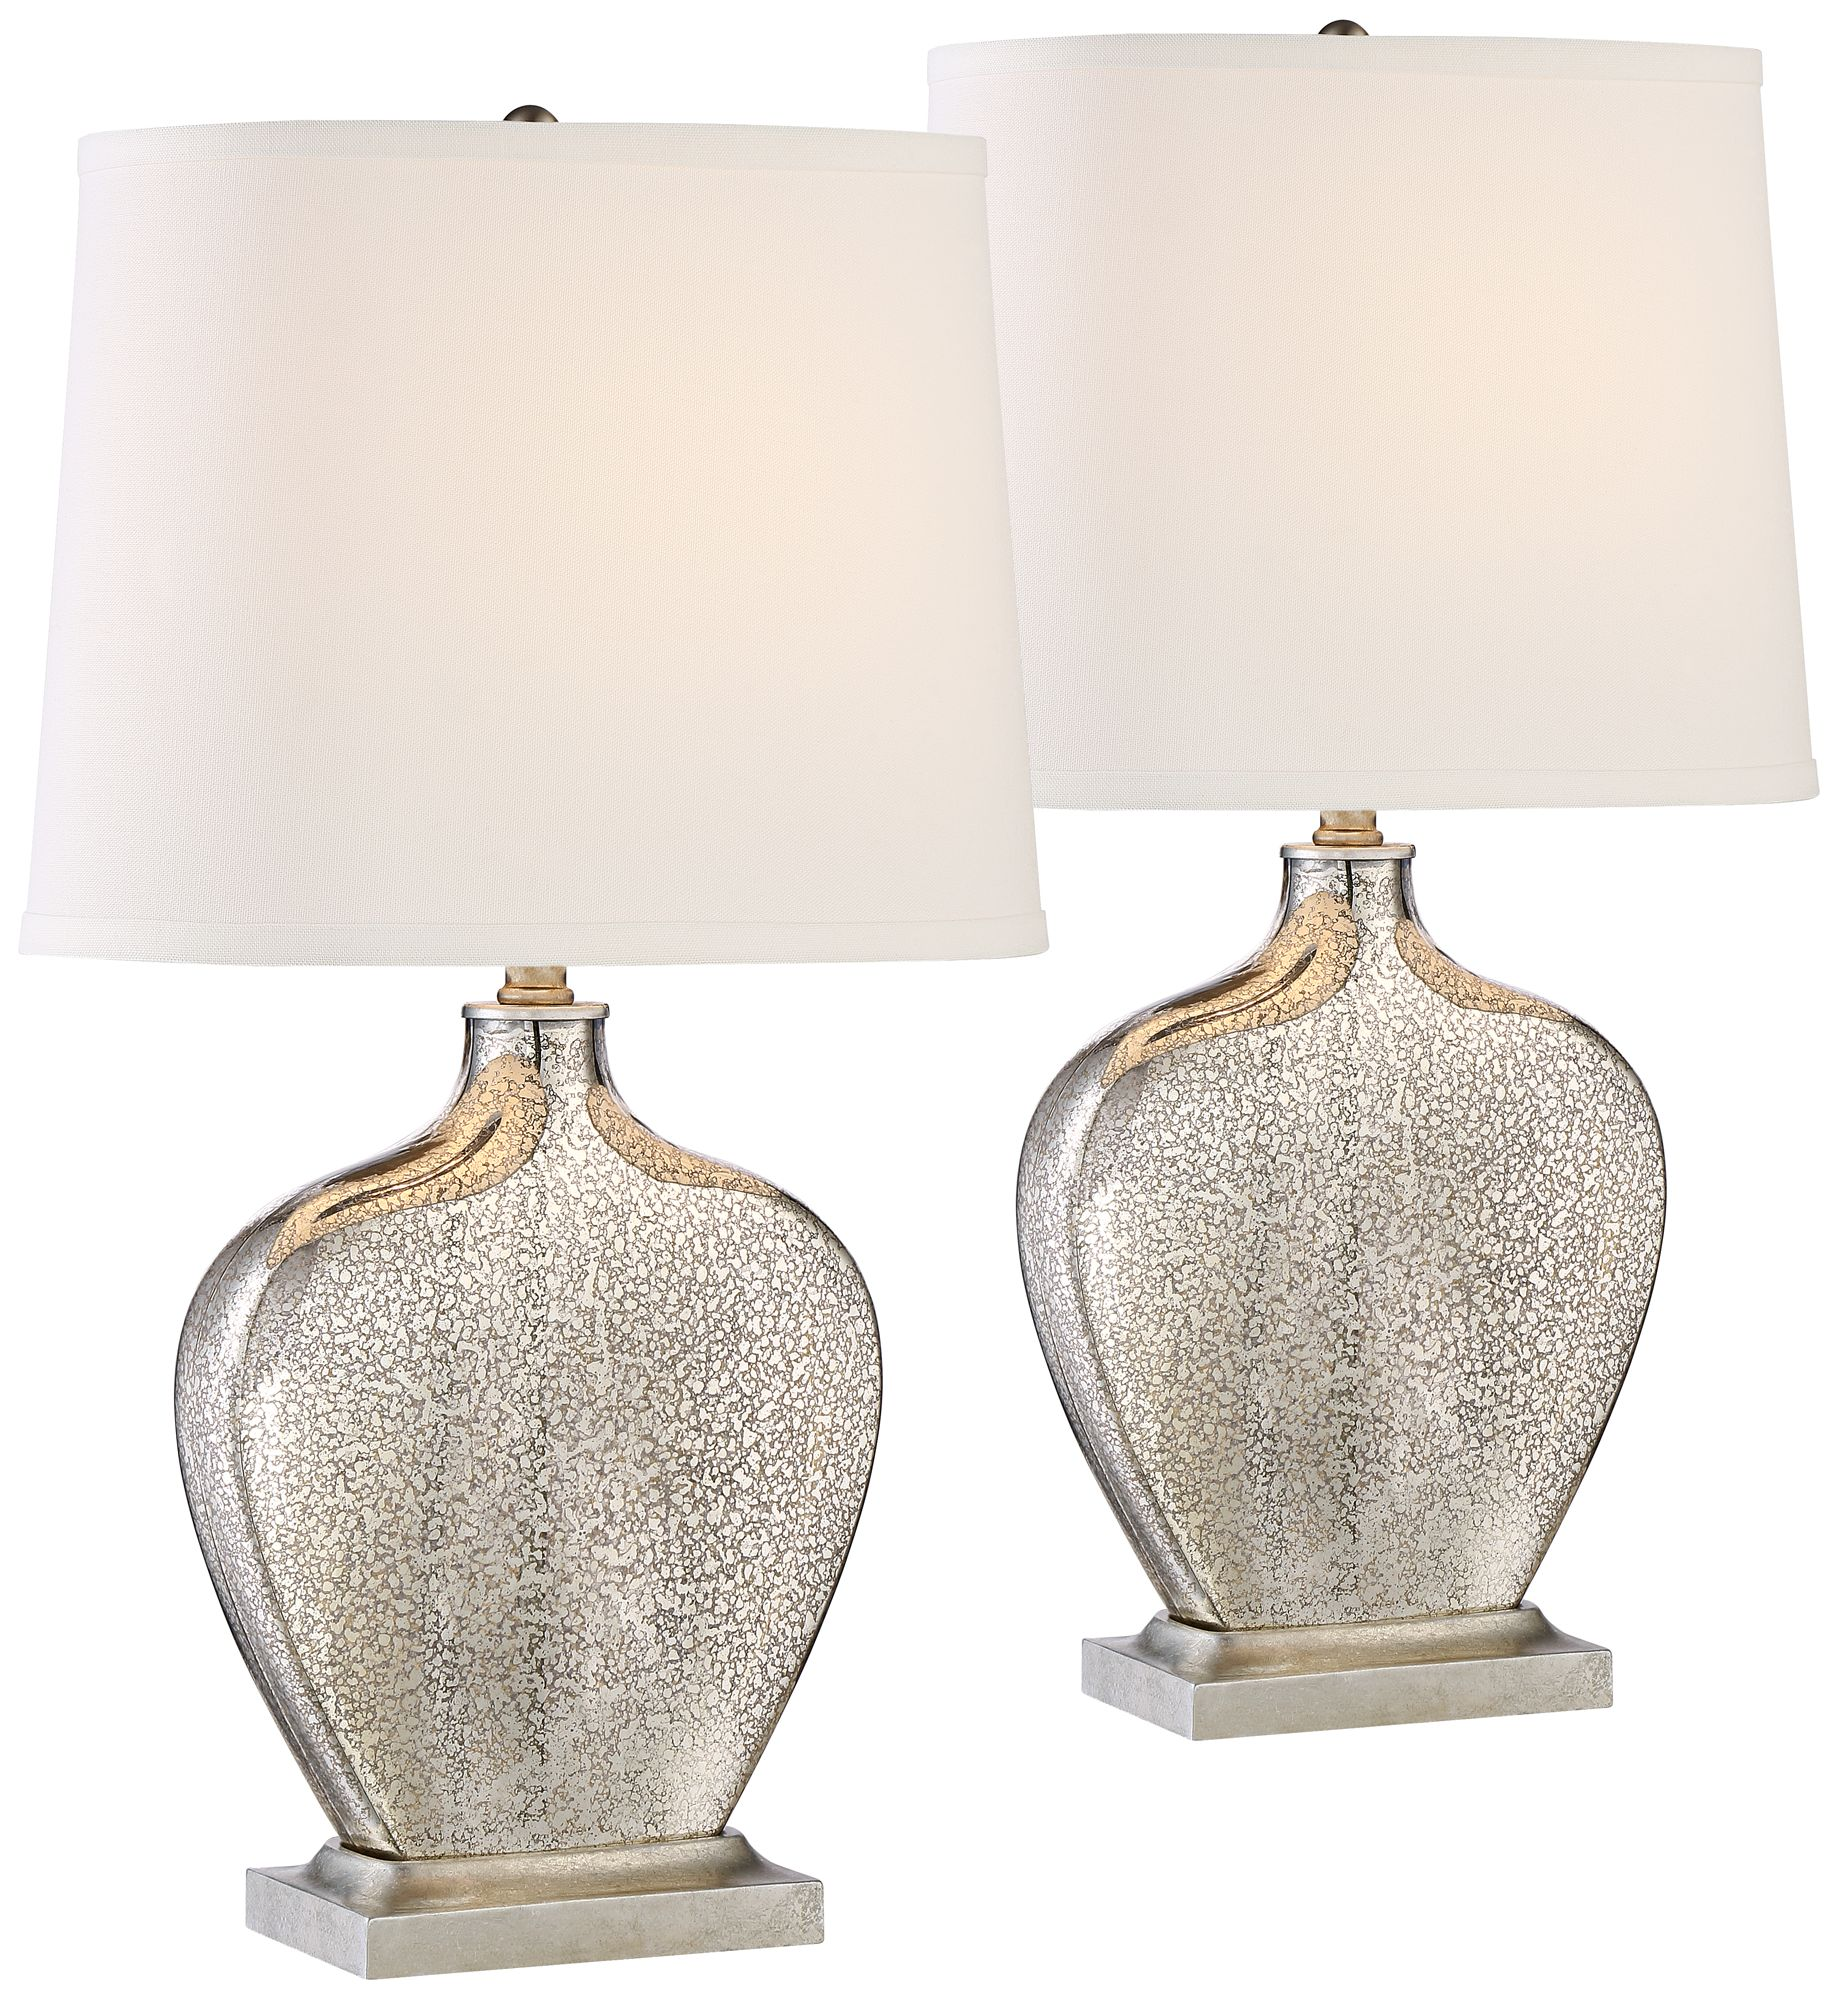 Nightstand Lamps Table Lamps For Bedside And Desk Crate And Barrel With Awe